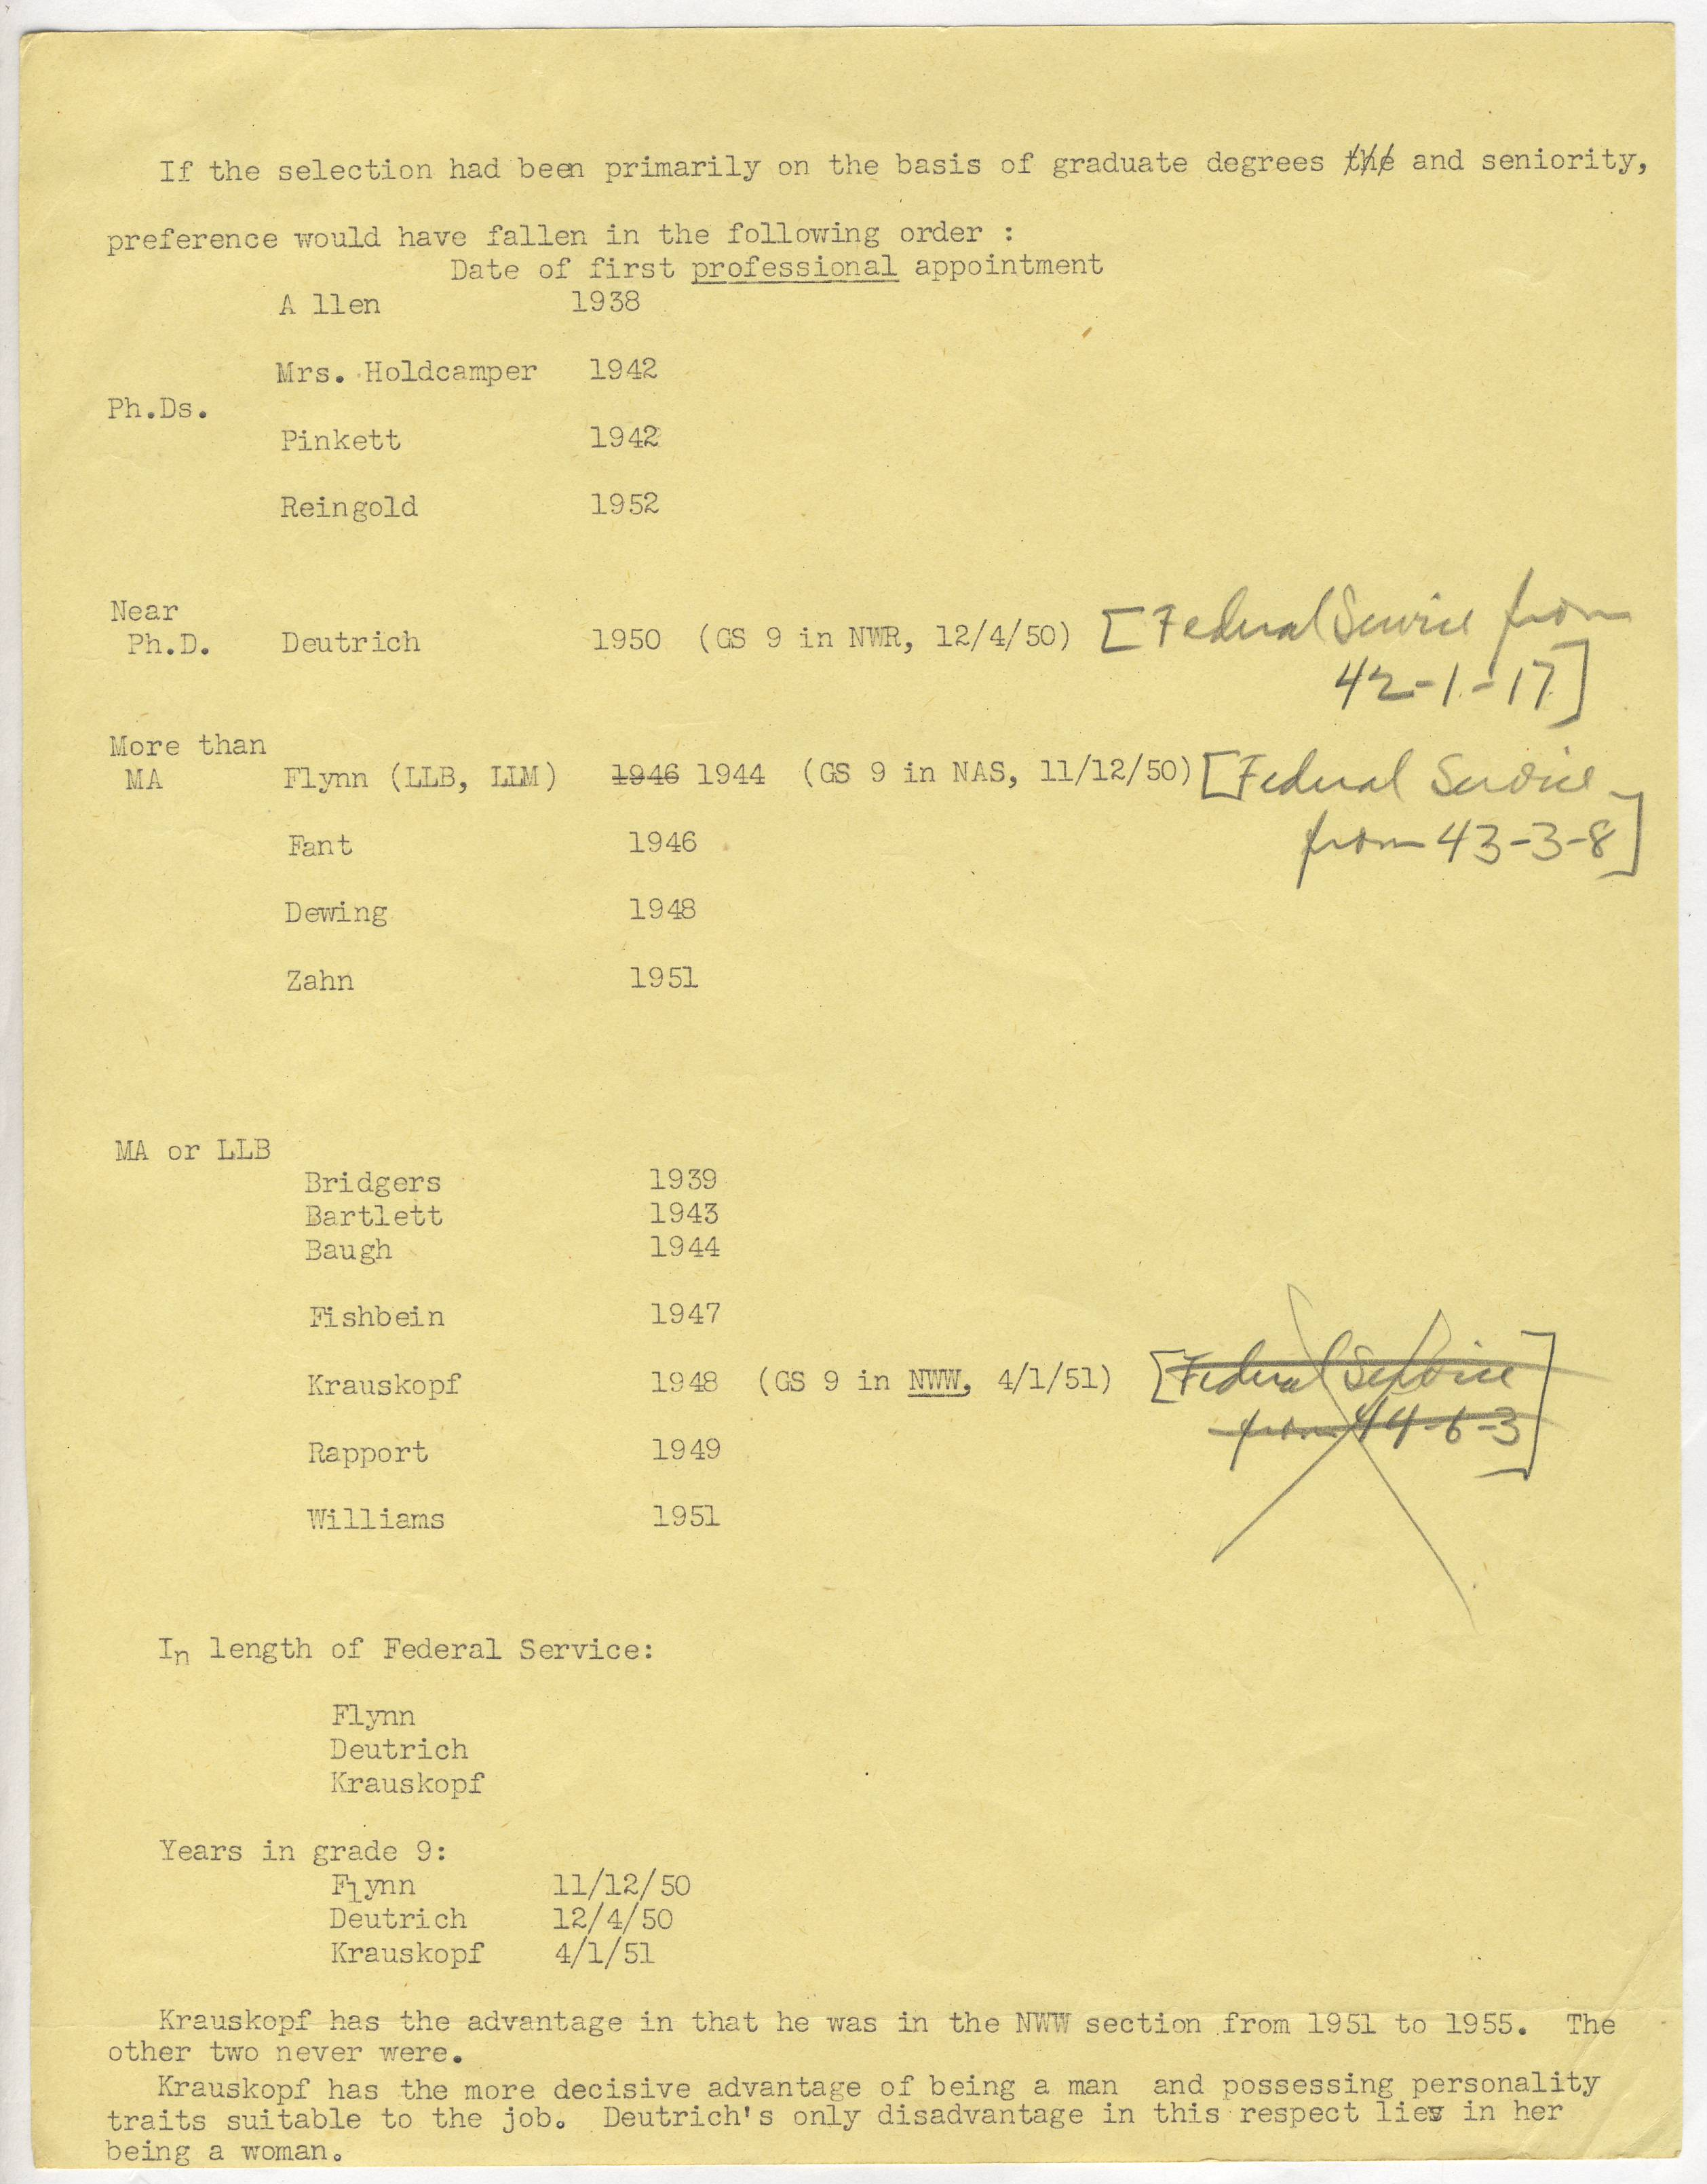 rg-64-a1-106-file-personnel-sexism-in-hiring-1955